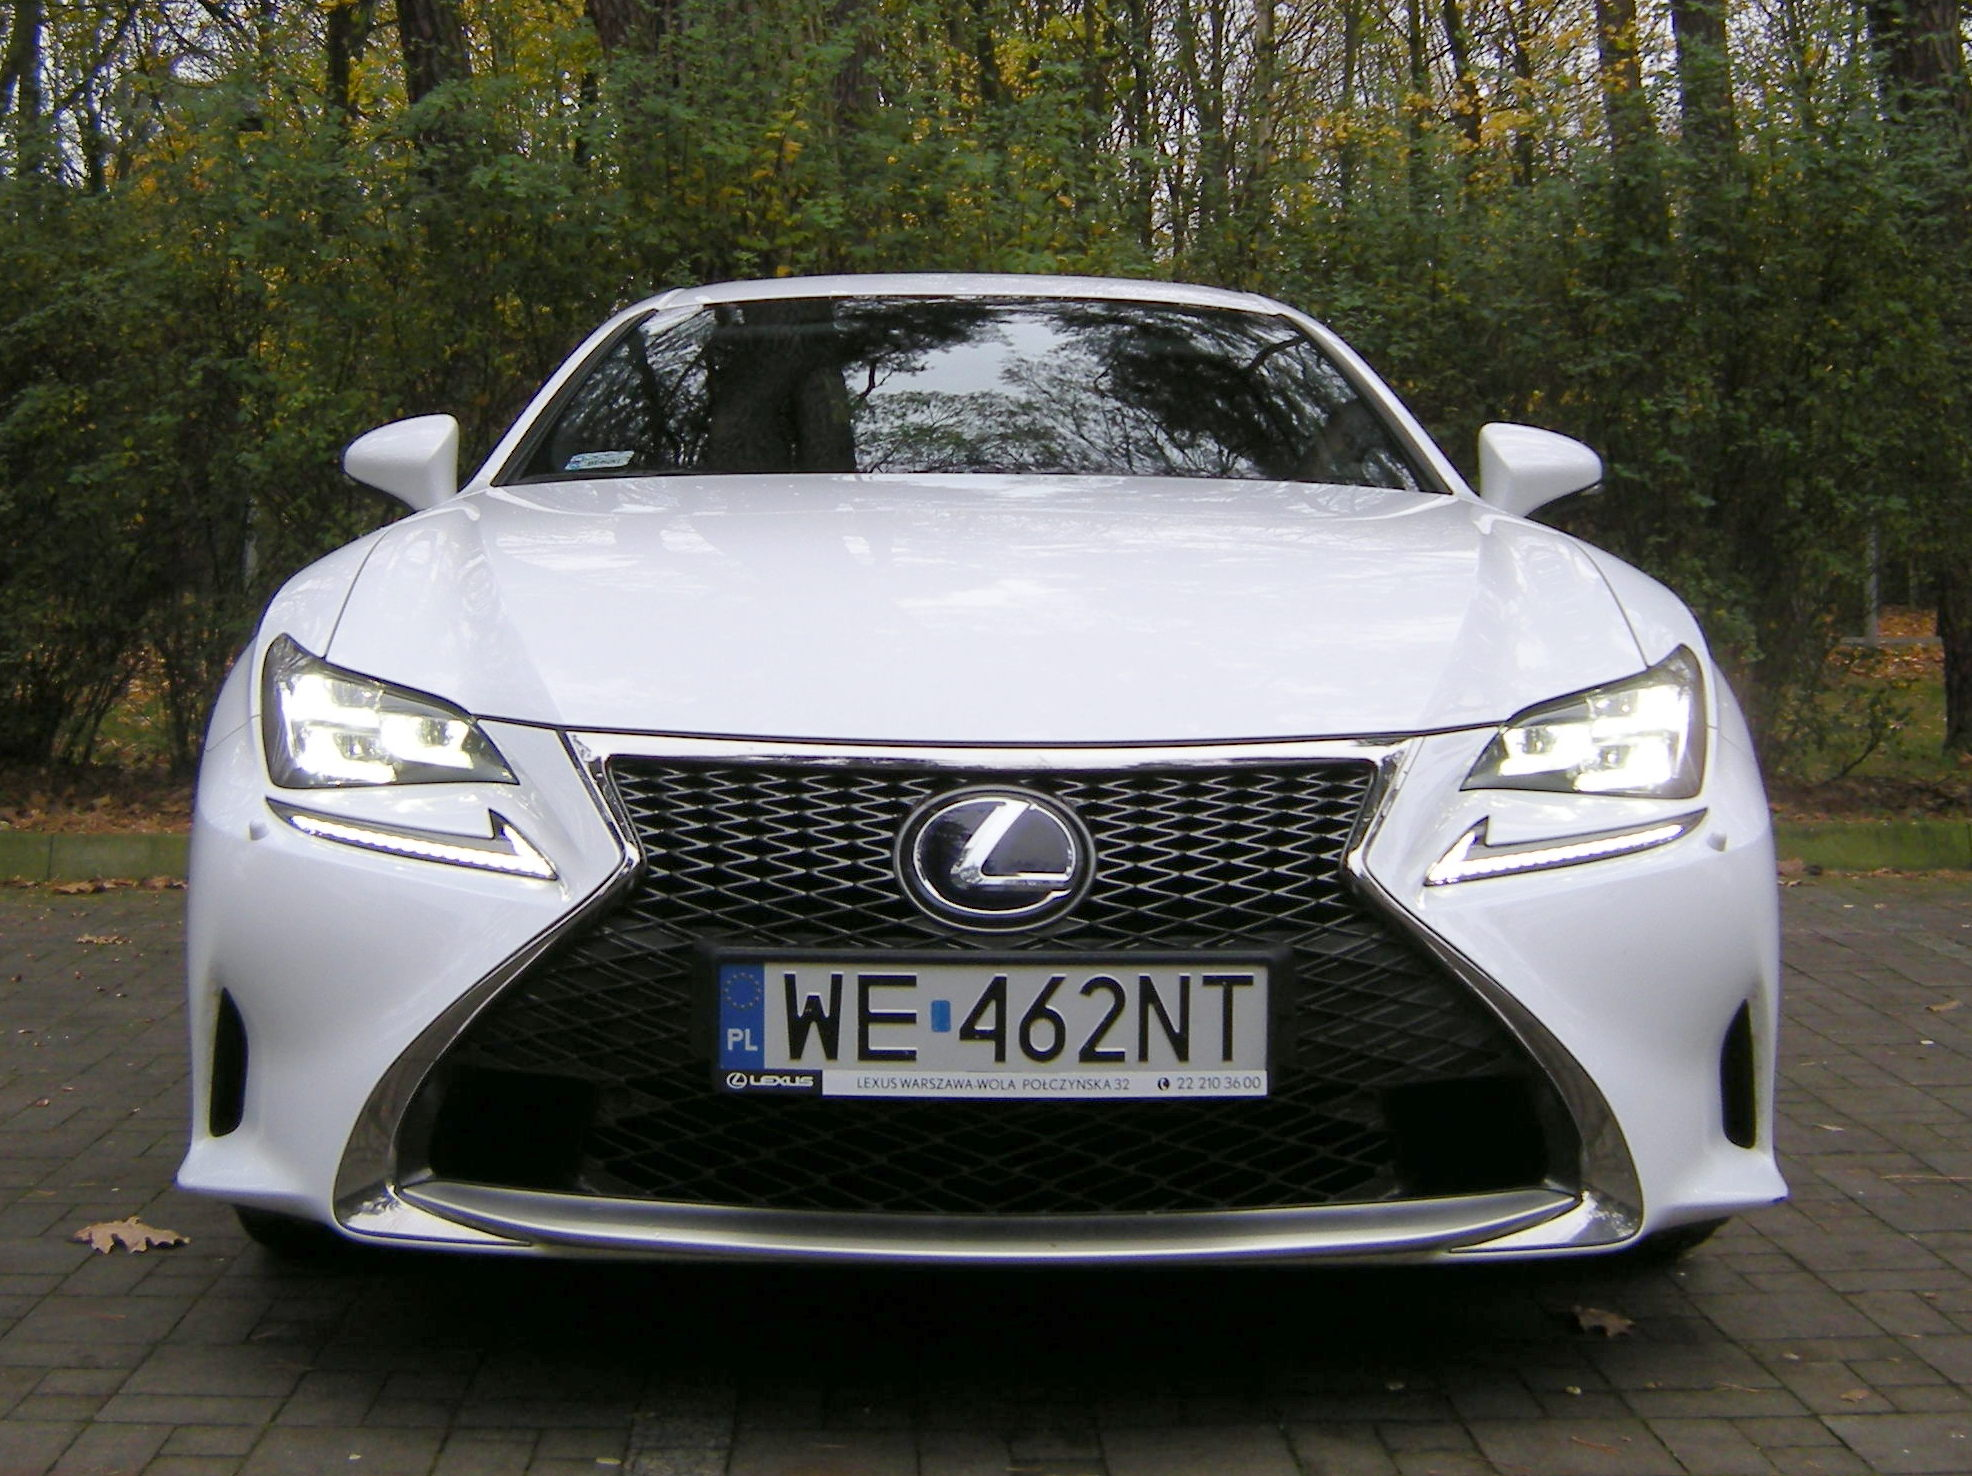 LEXUS Club Poland